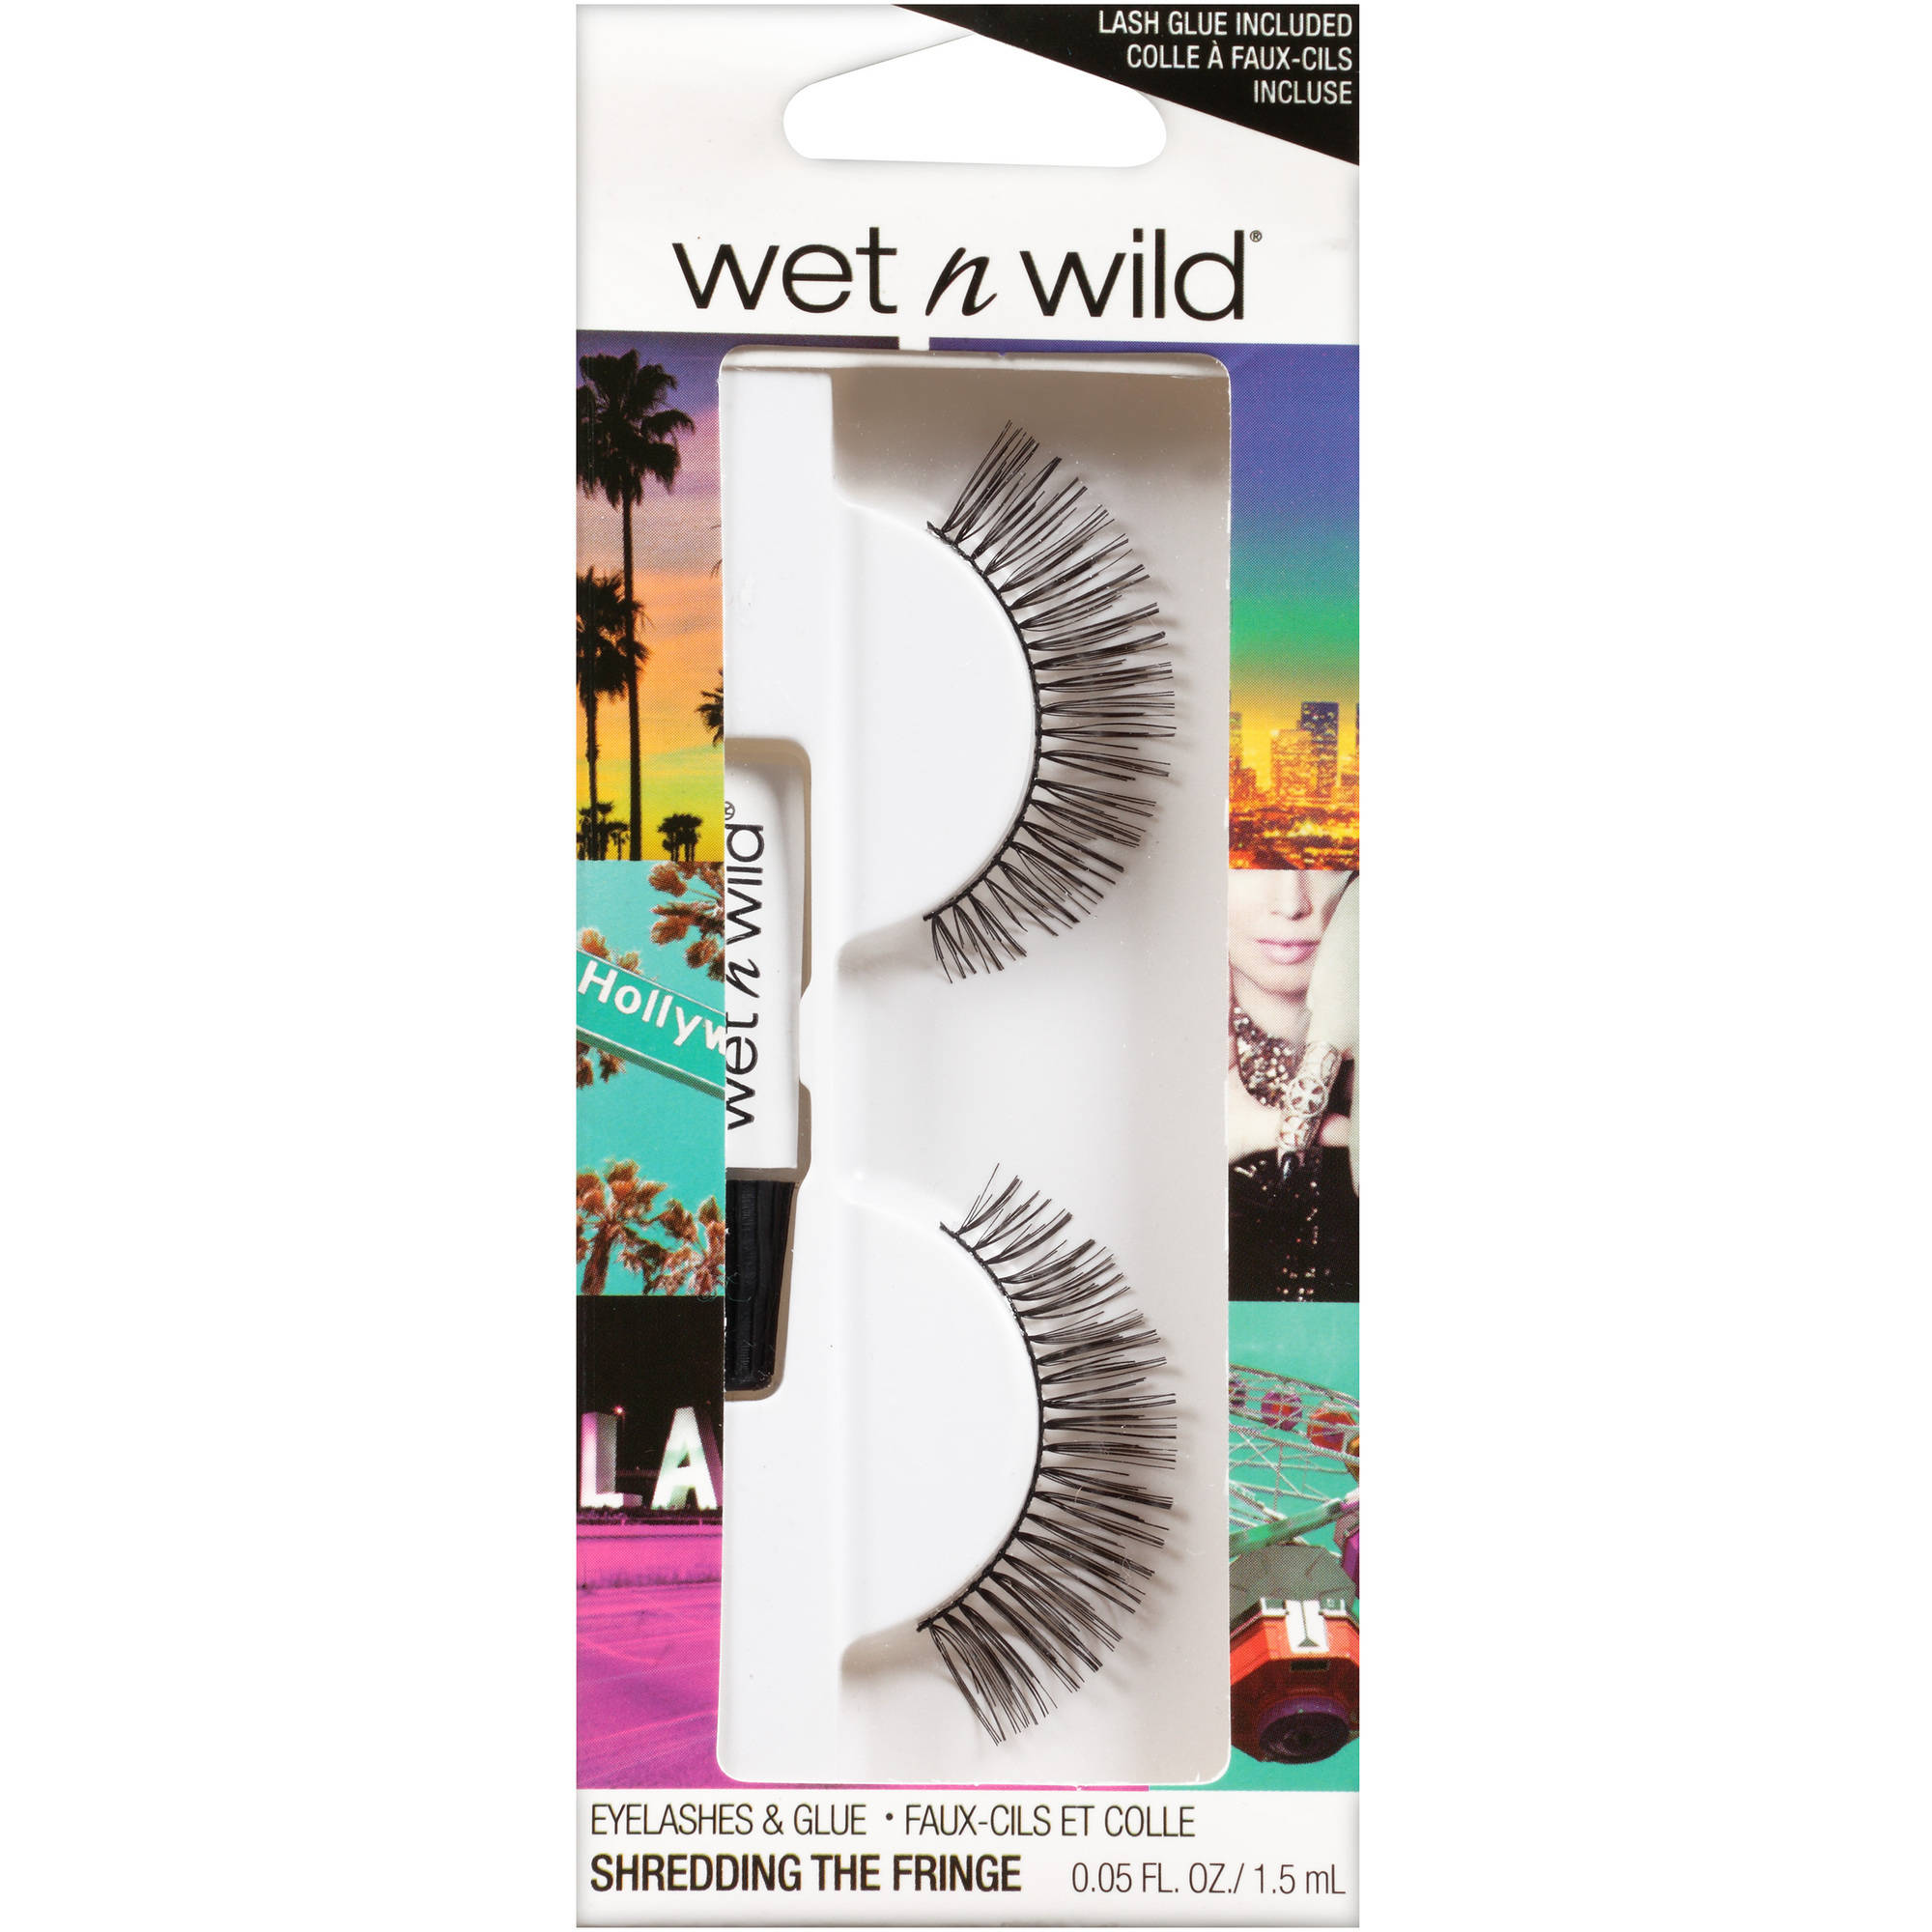 Wet n Wild Eyelashes & Glue, C971A Shredding the Fringe, 0.05 fl oz